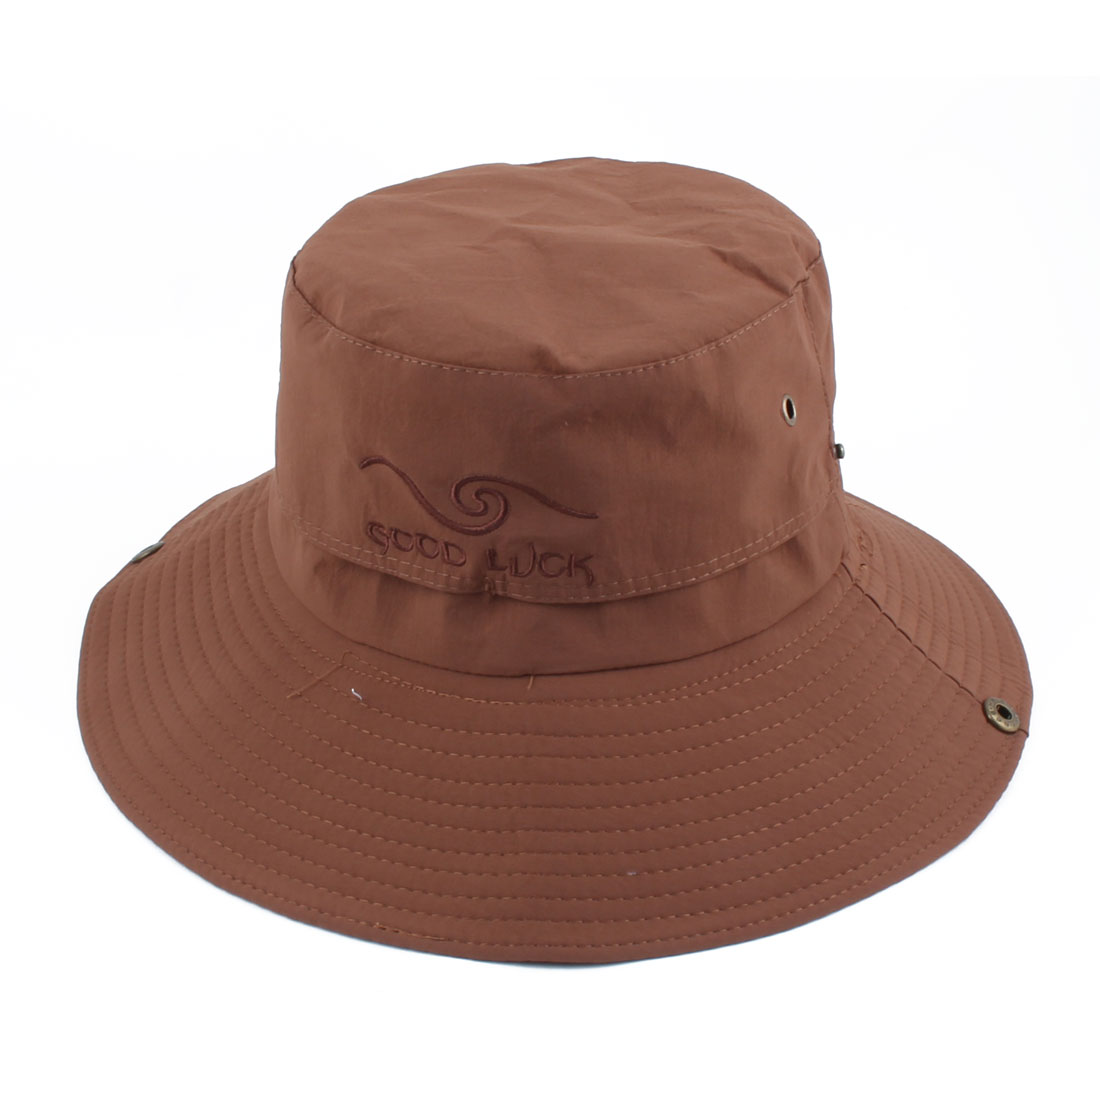 Fisherman Outdoor Sports Hiking Adjustable Strap Mesh Wide Brim Protector Bucket Summer Cap Fishing Hat Brown